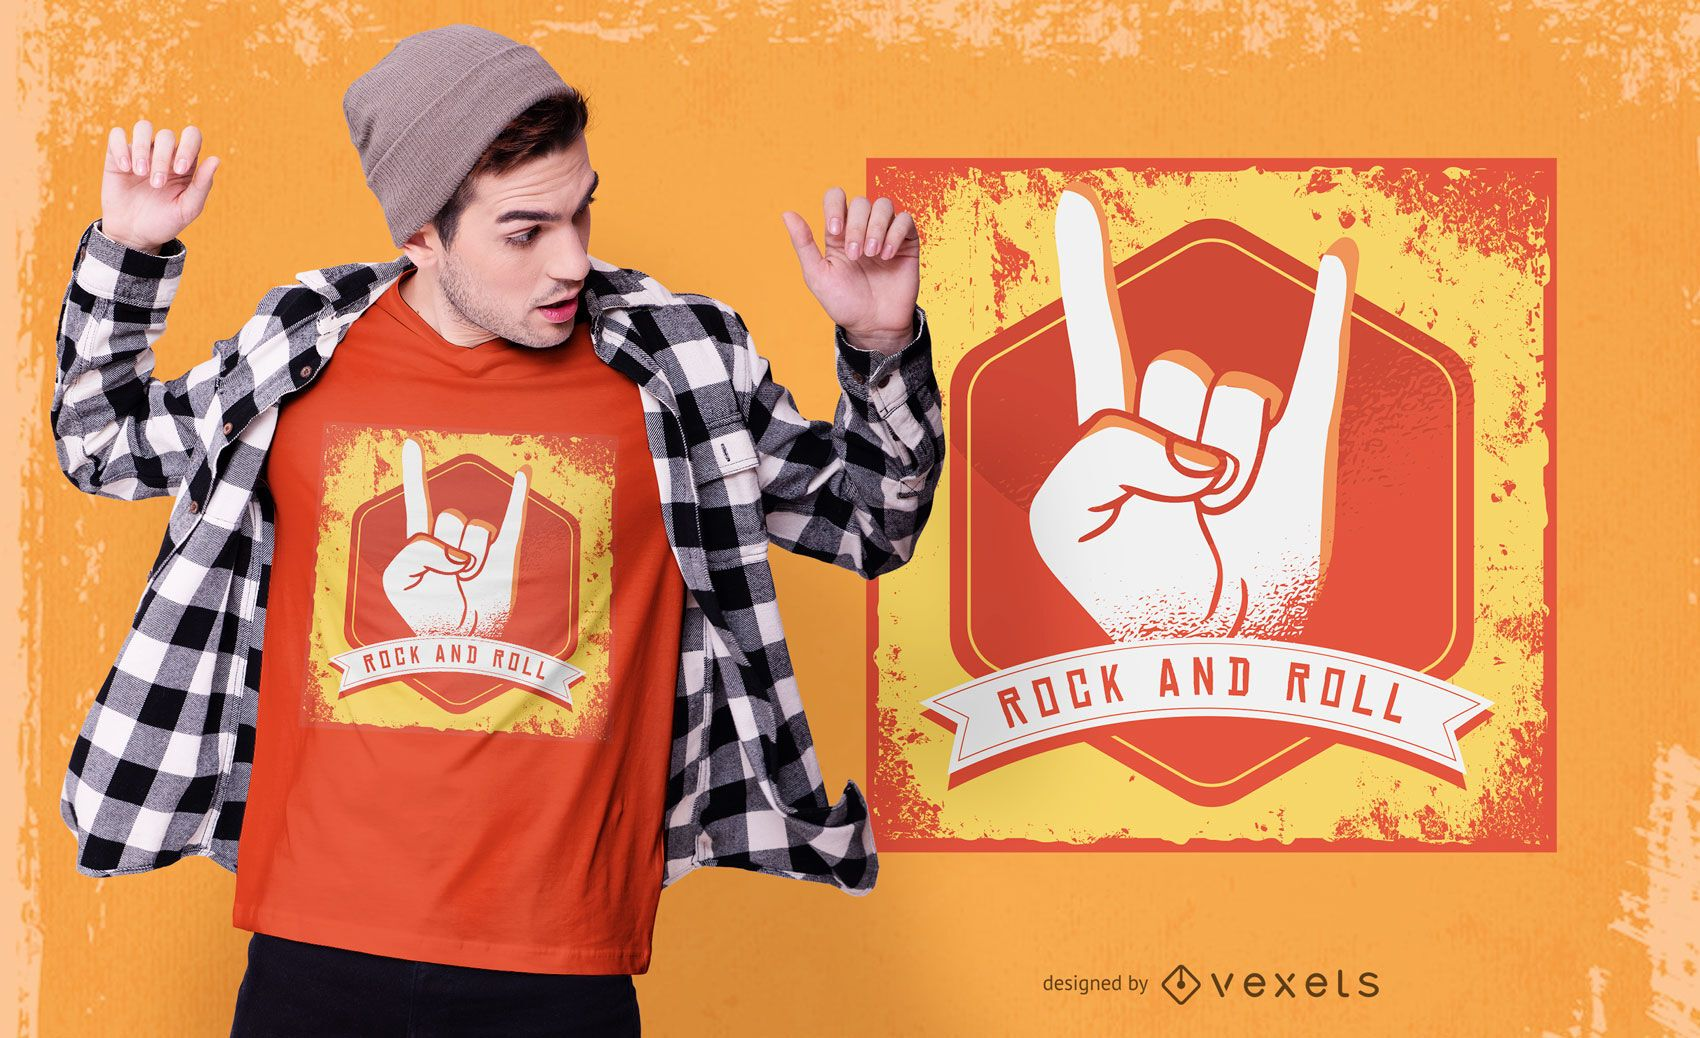 Rock and roll vintage t-shirt